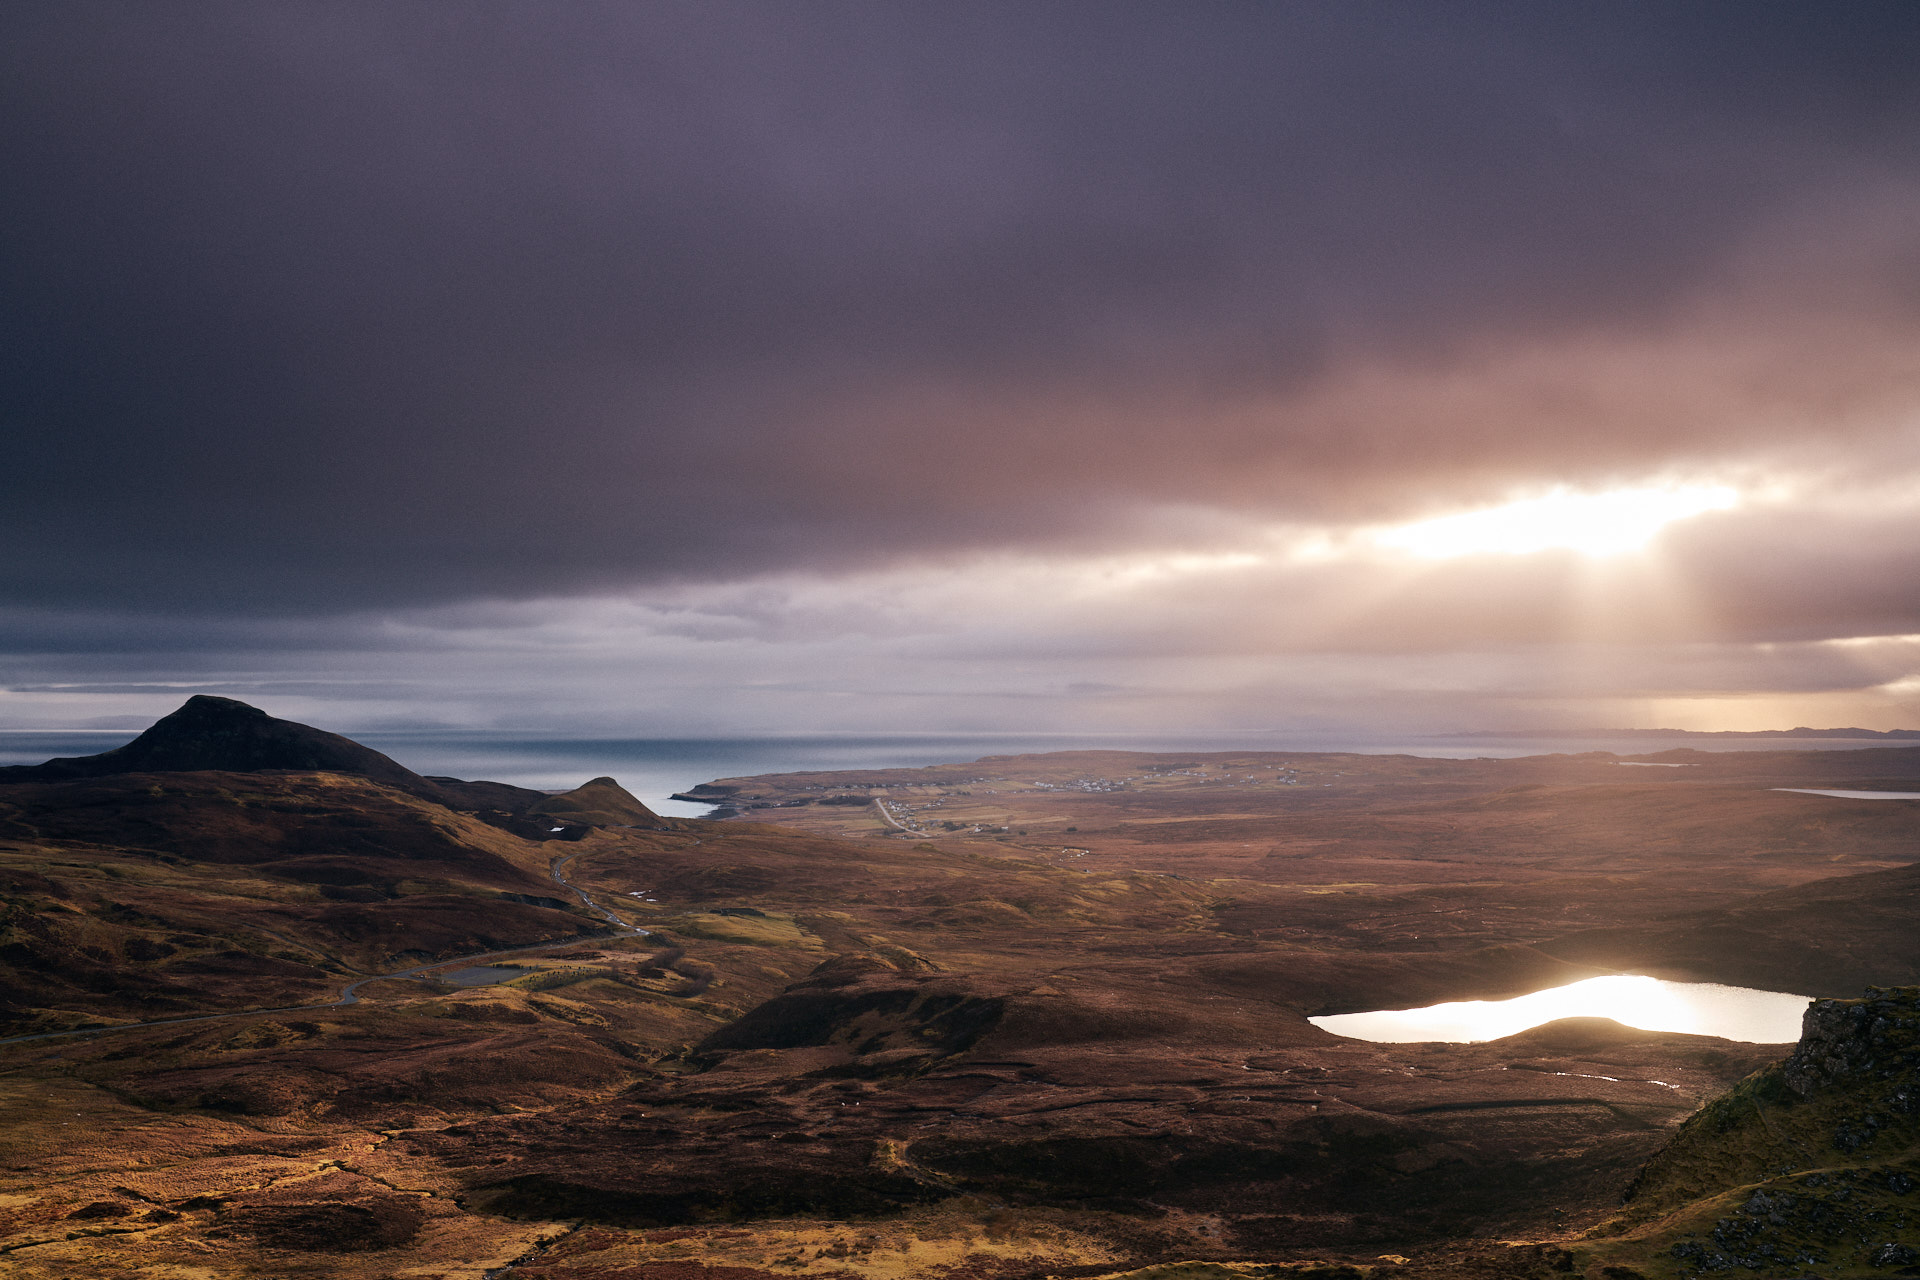 Looking South from the top of the Quiraing - Isle of Skye